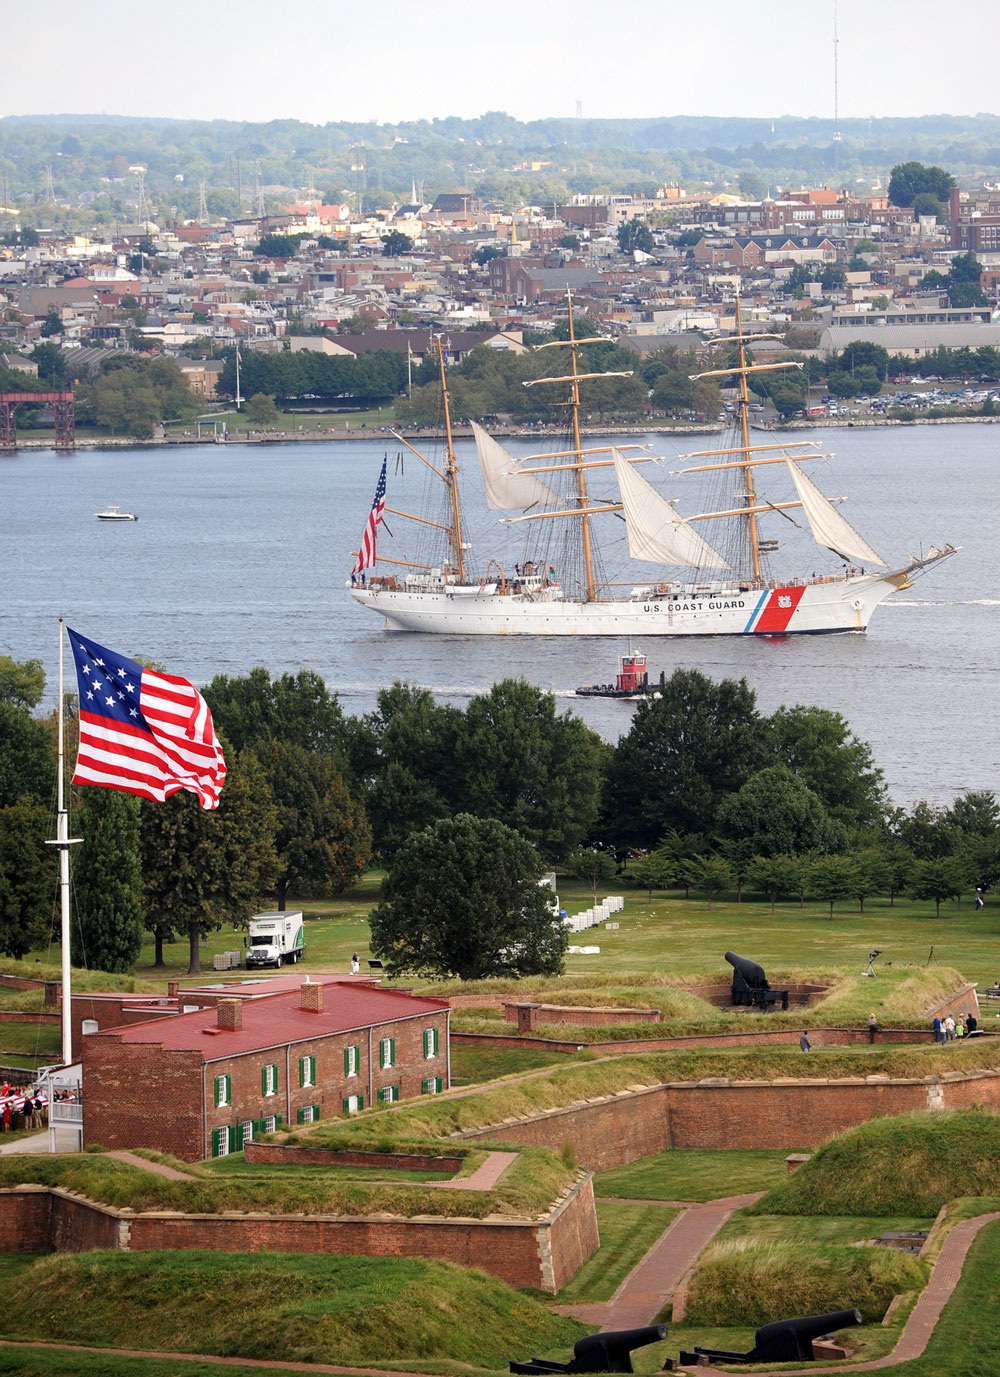 The U.S. Coast Guard barque Eagle departs Baltimore's Inner Harbor during the closing of Star-Spangled Spectacular activities. The Eagle was one of more than 30 naval vessels and tall ships that took part in the Star-Spangled Spectacular.